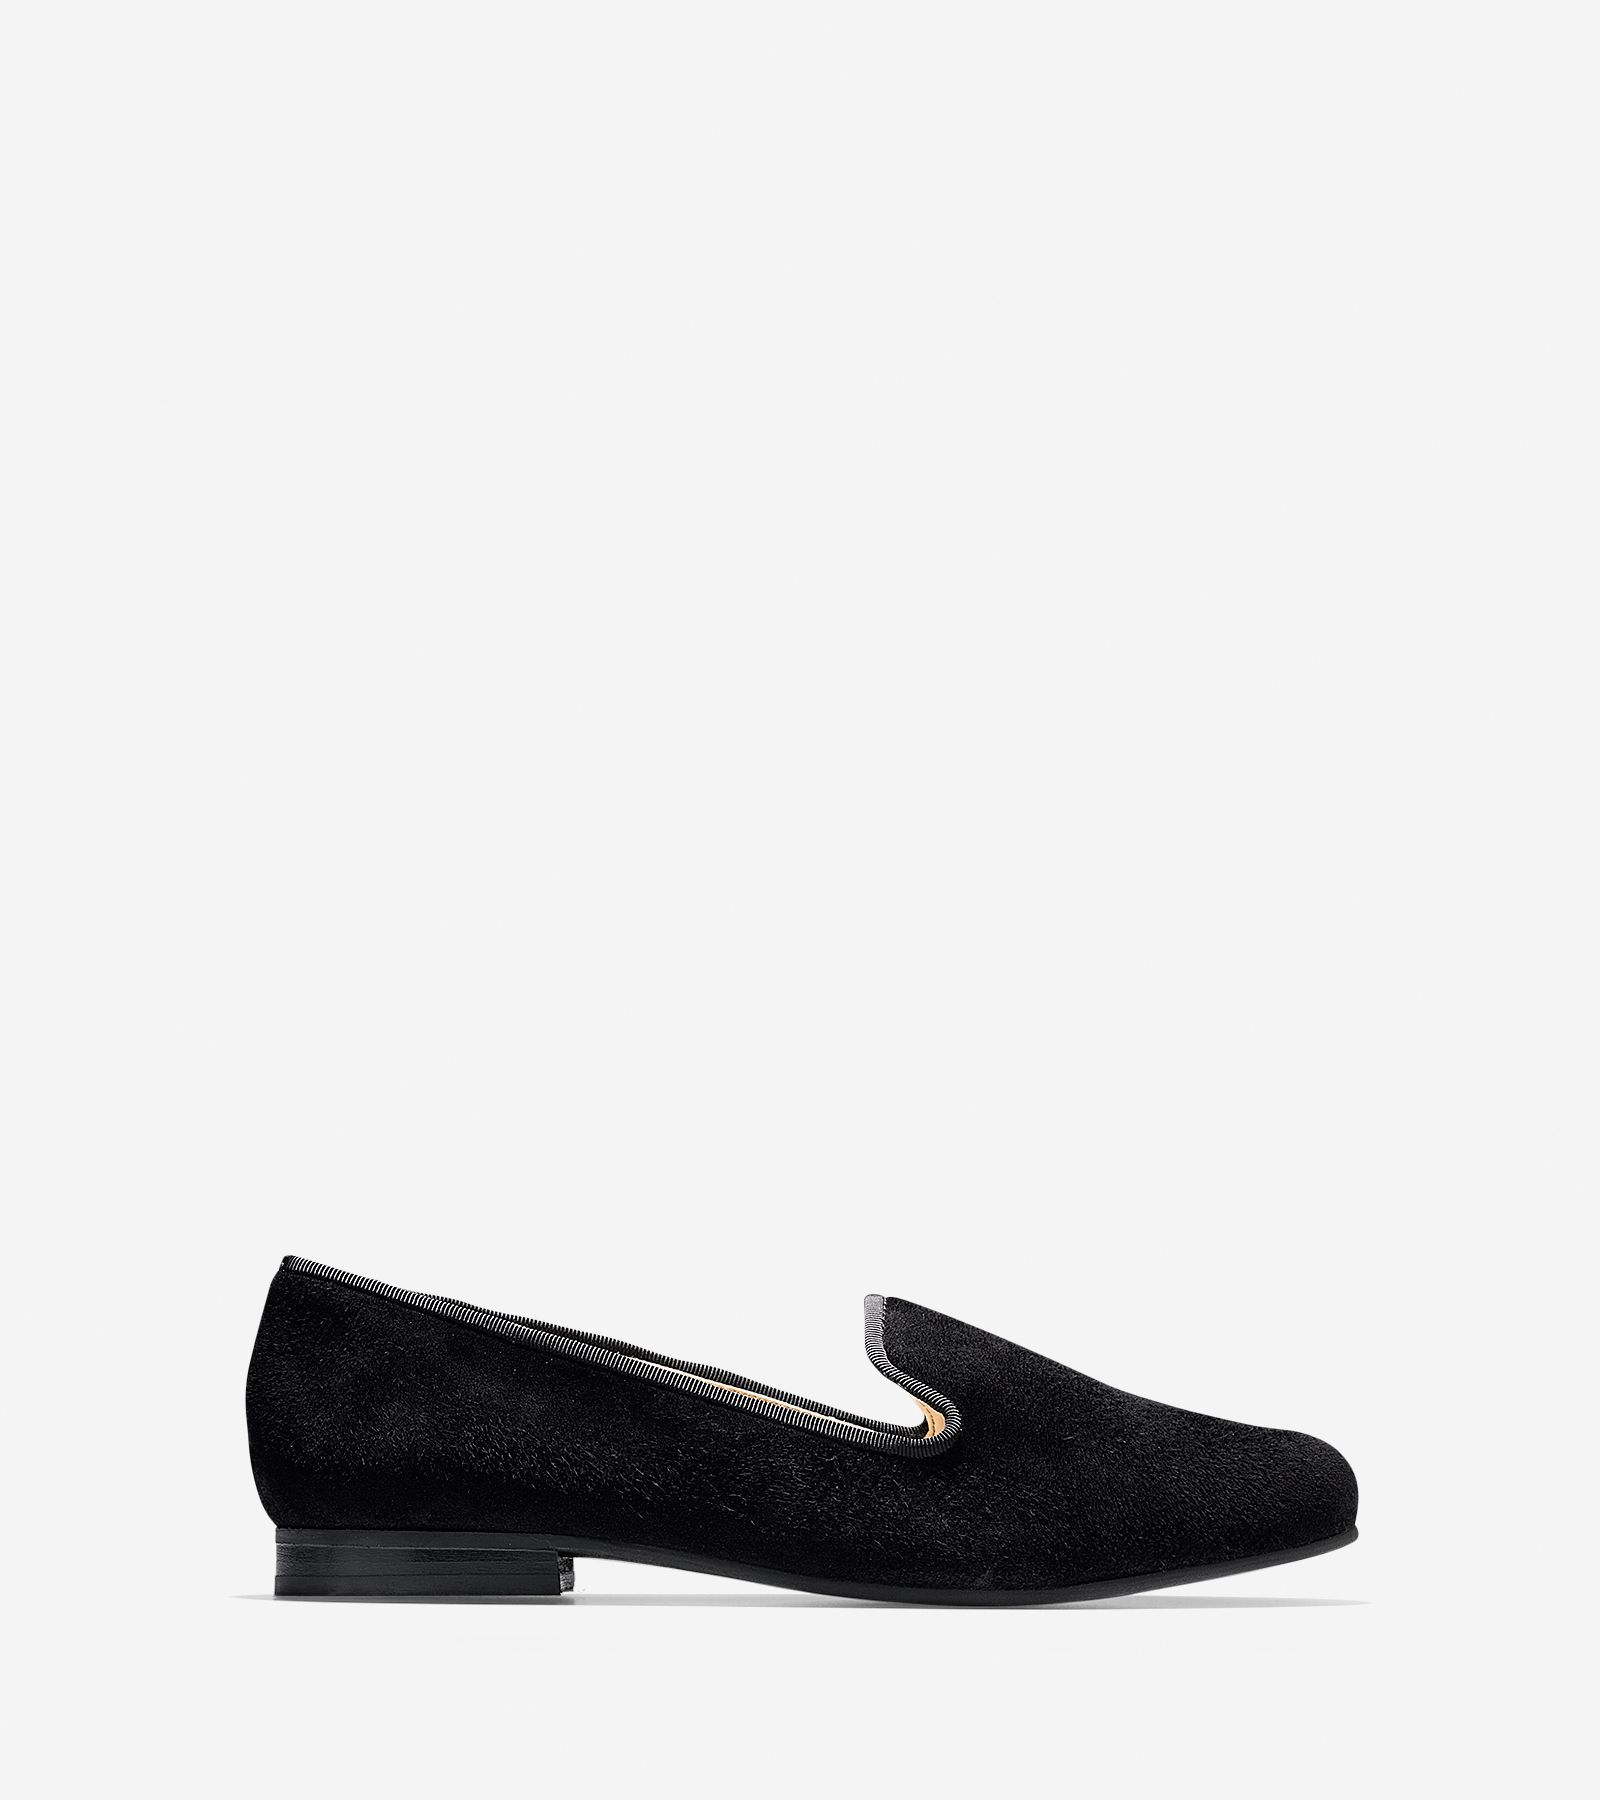 Black Loafers (Cole Haan) - Size 7.5